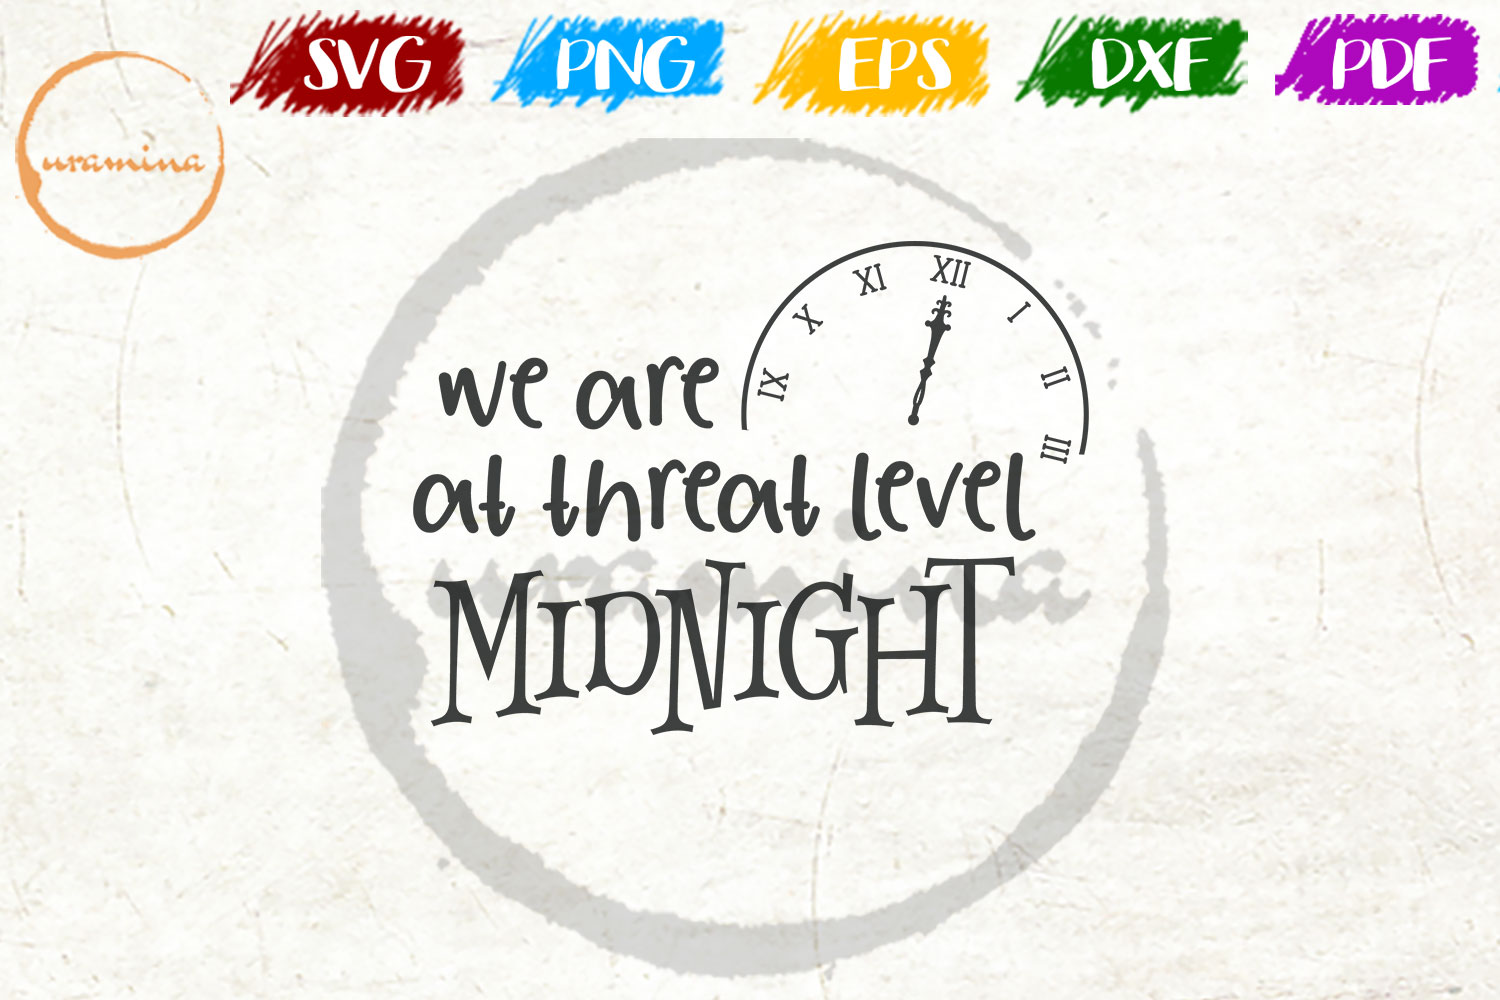 Download Free We Are At Threat Level Midnight Graphic By Uramina Creative for Cricut Explore, Silhouette and other cutting machines.